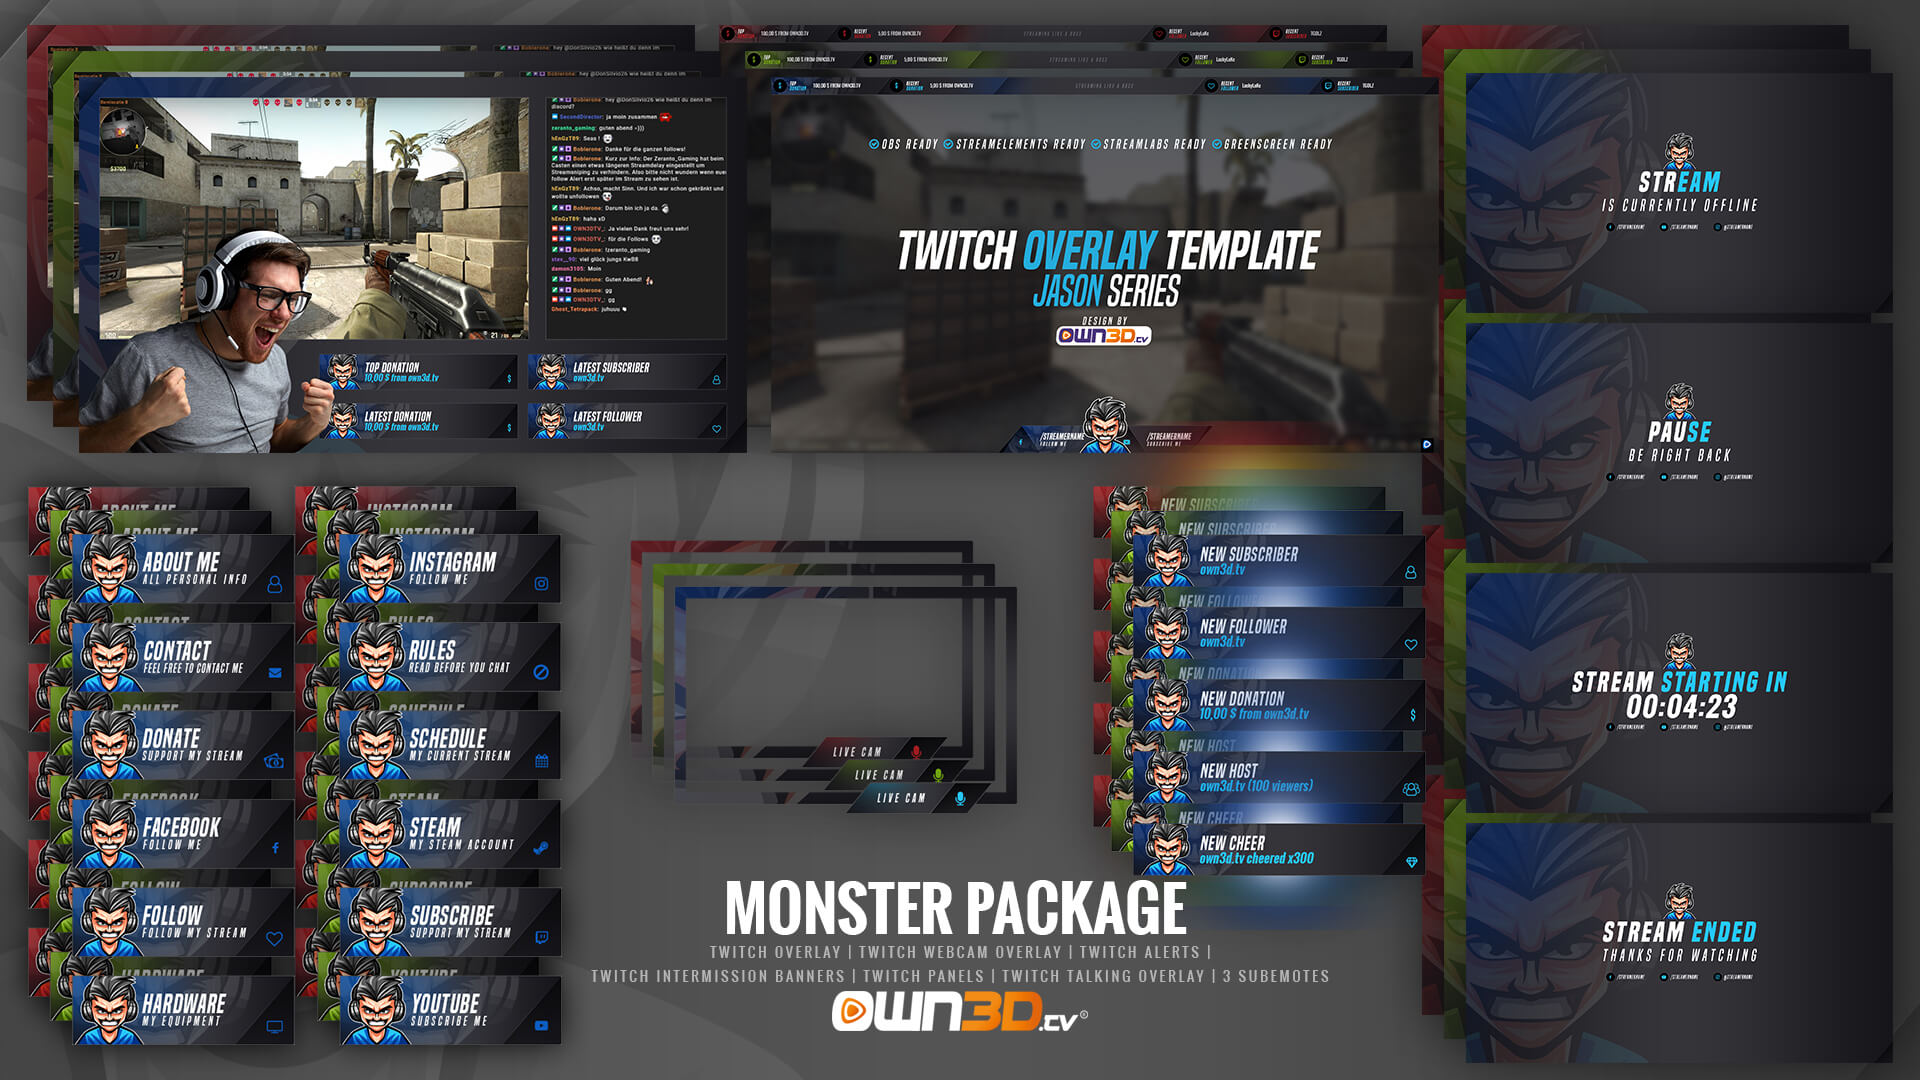 jason-series-ALL-twitch-overlay-package-03-monster.jpg